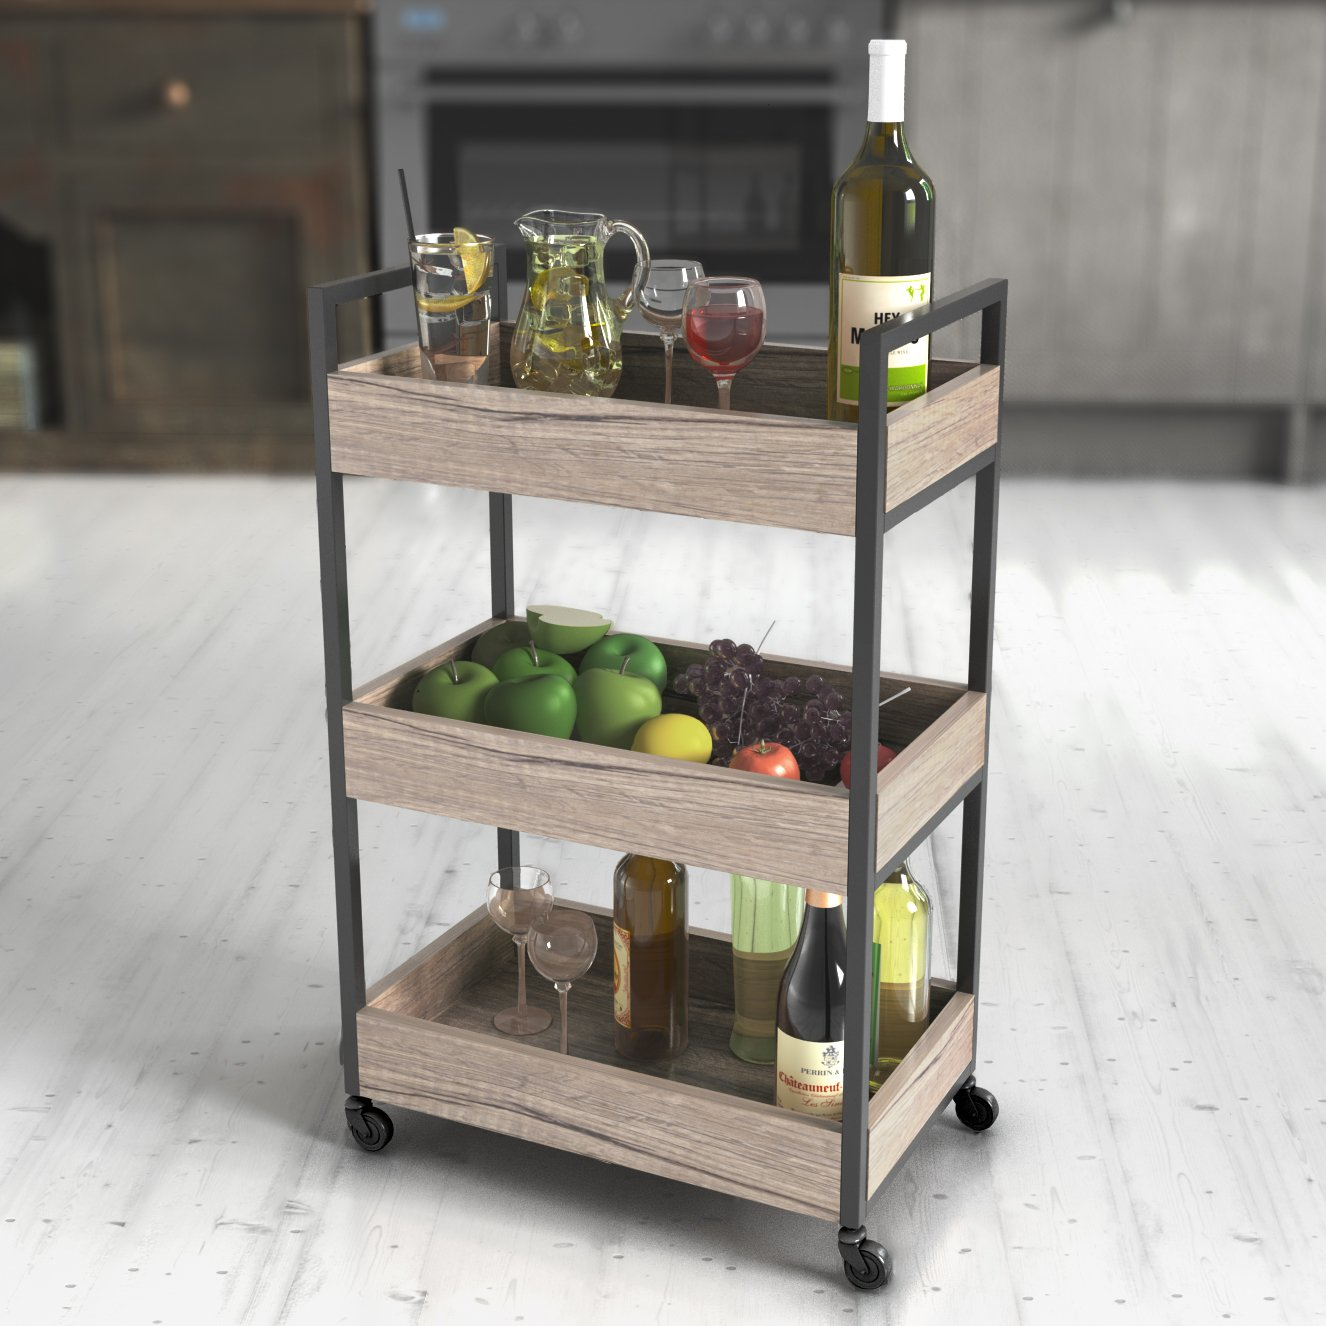 Roomfitters 3 Tier Rolling Utility Storage Cart, Kitchen Serving Bar Cart, Multipurpose Bathroom Nursery, Oak LHL-SC-001